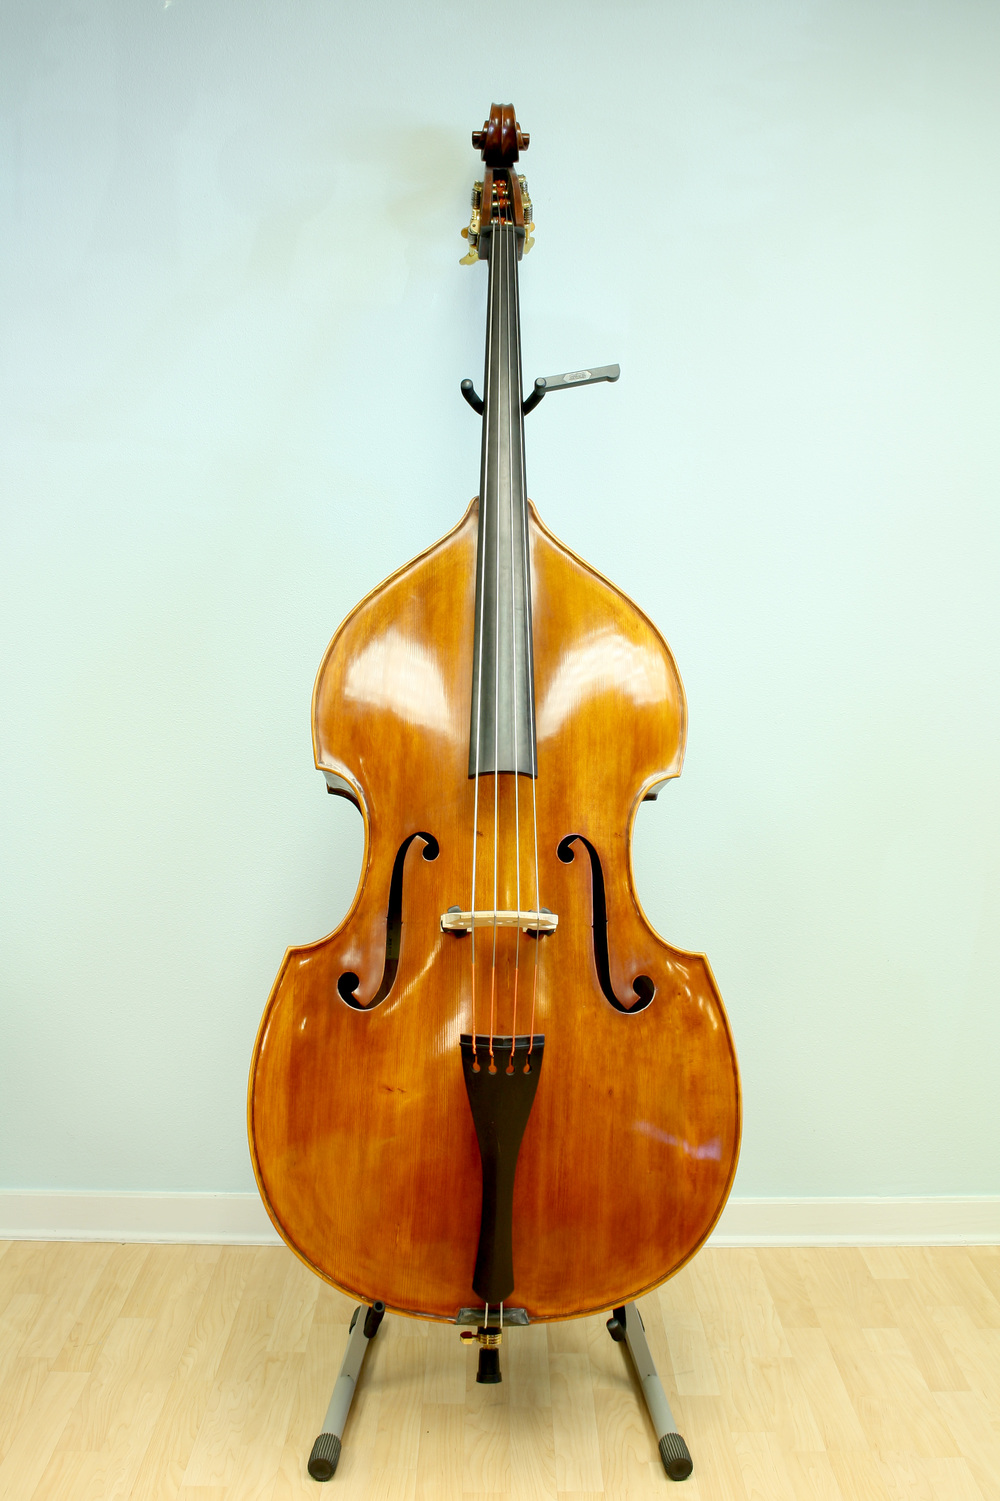 Shen SB200 Willow Bass - $3999